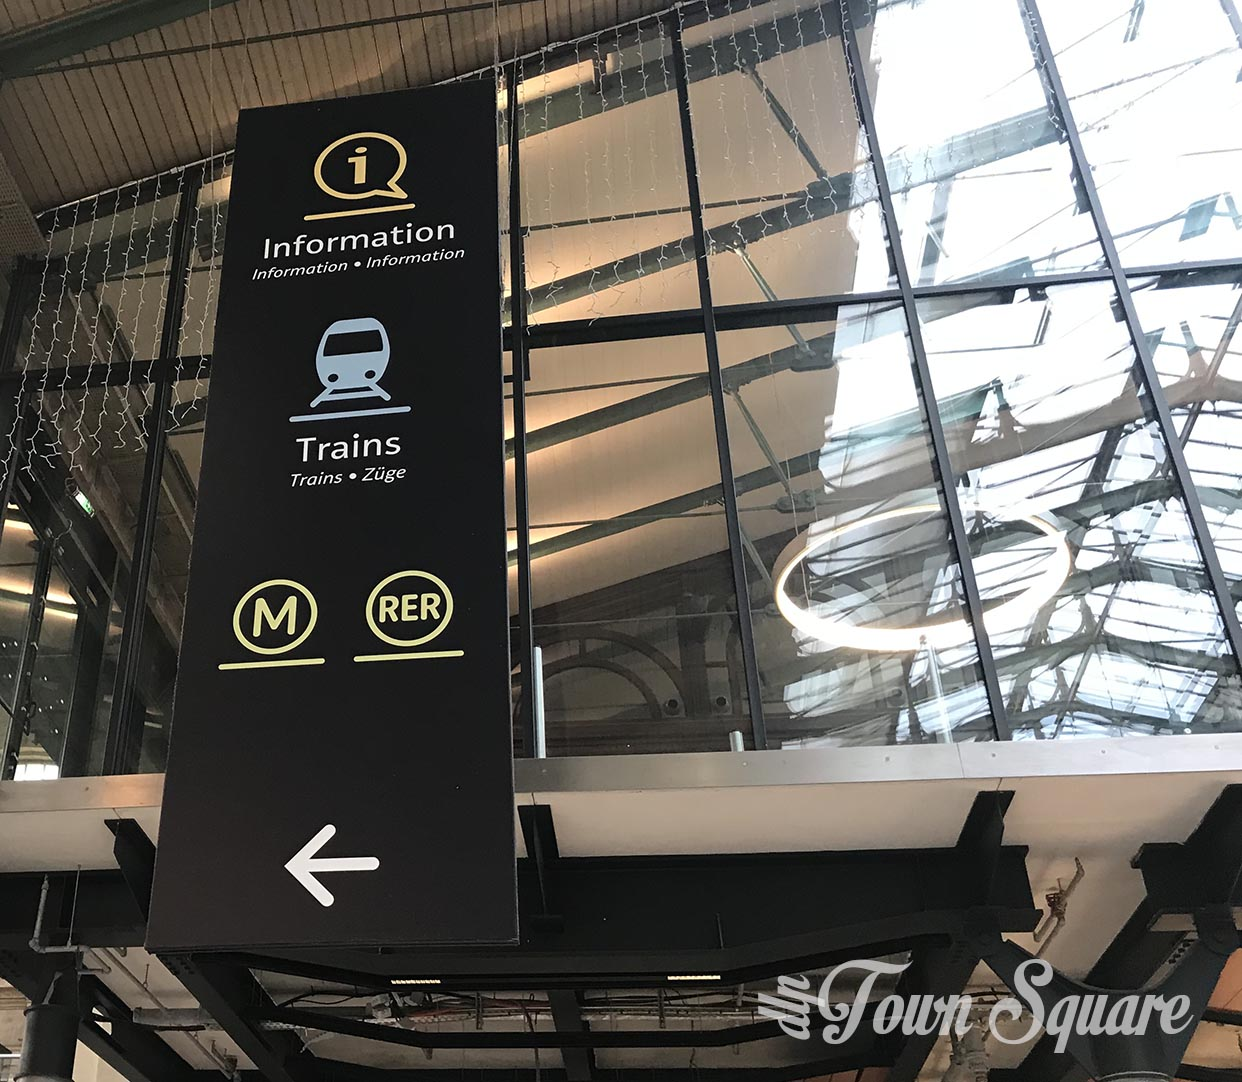 Directions to the Métro and RER in Paris Gare du Nord